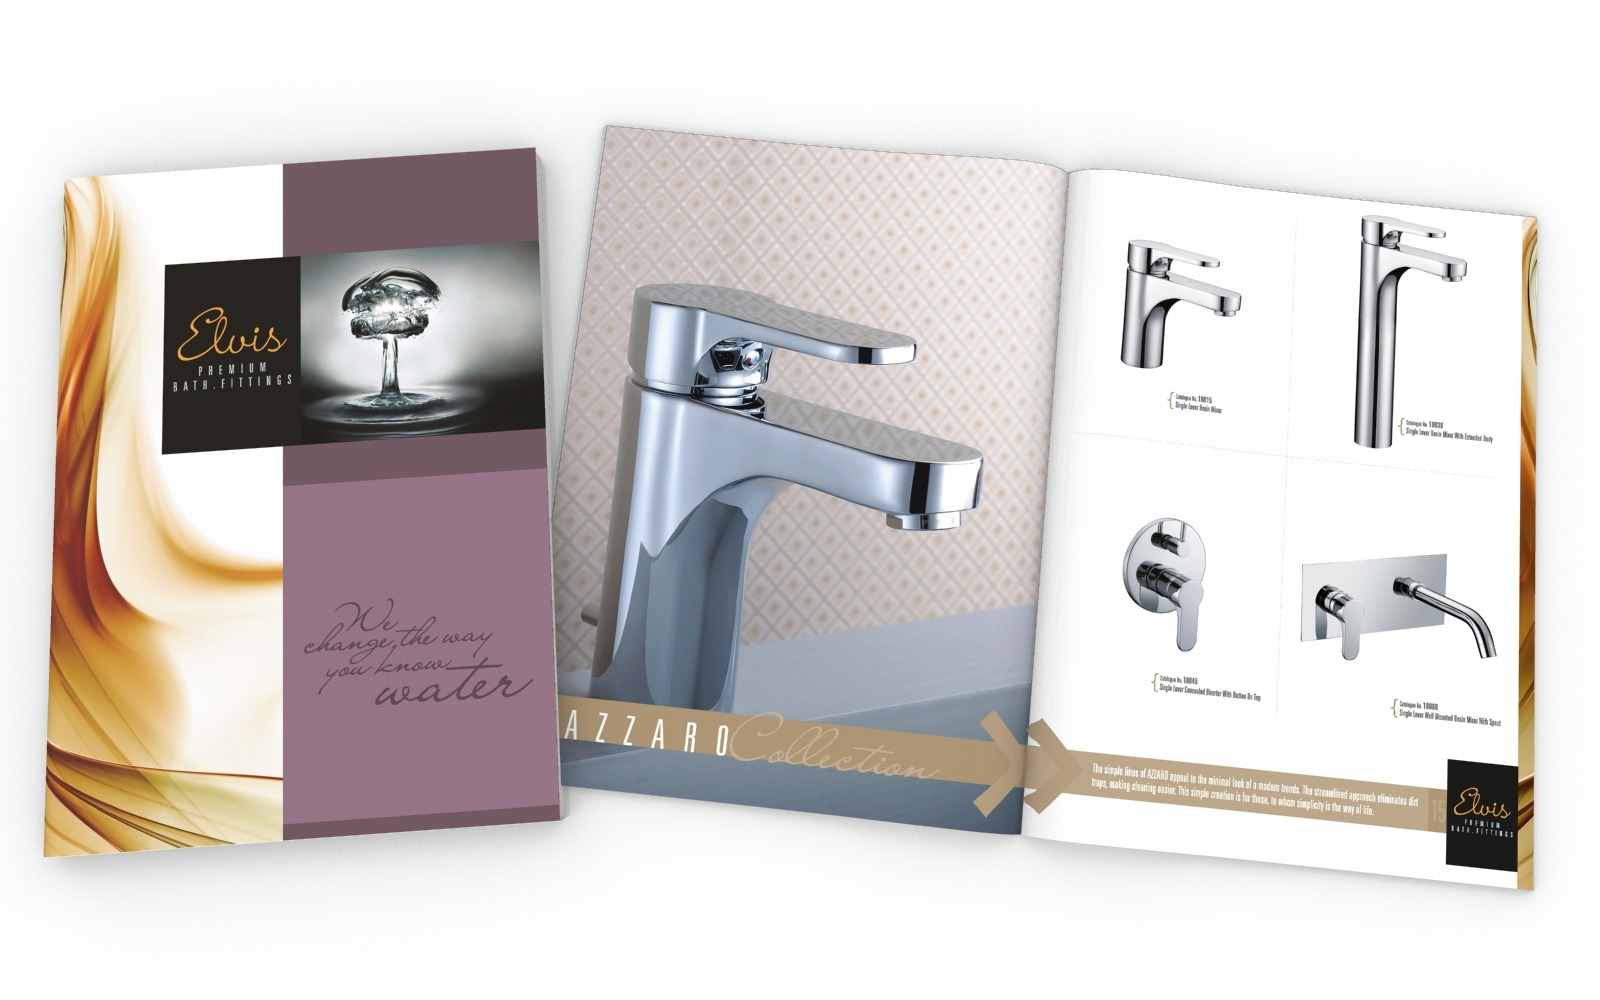 Brochure/ Catalog design for a Bath fittings manufacturer, Elvis